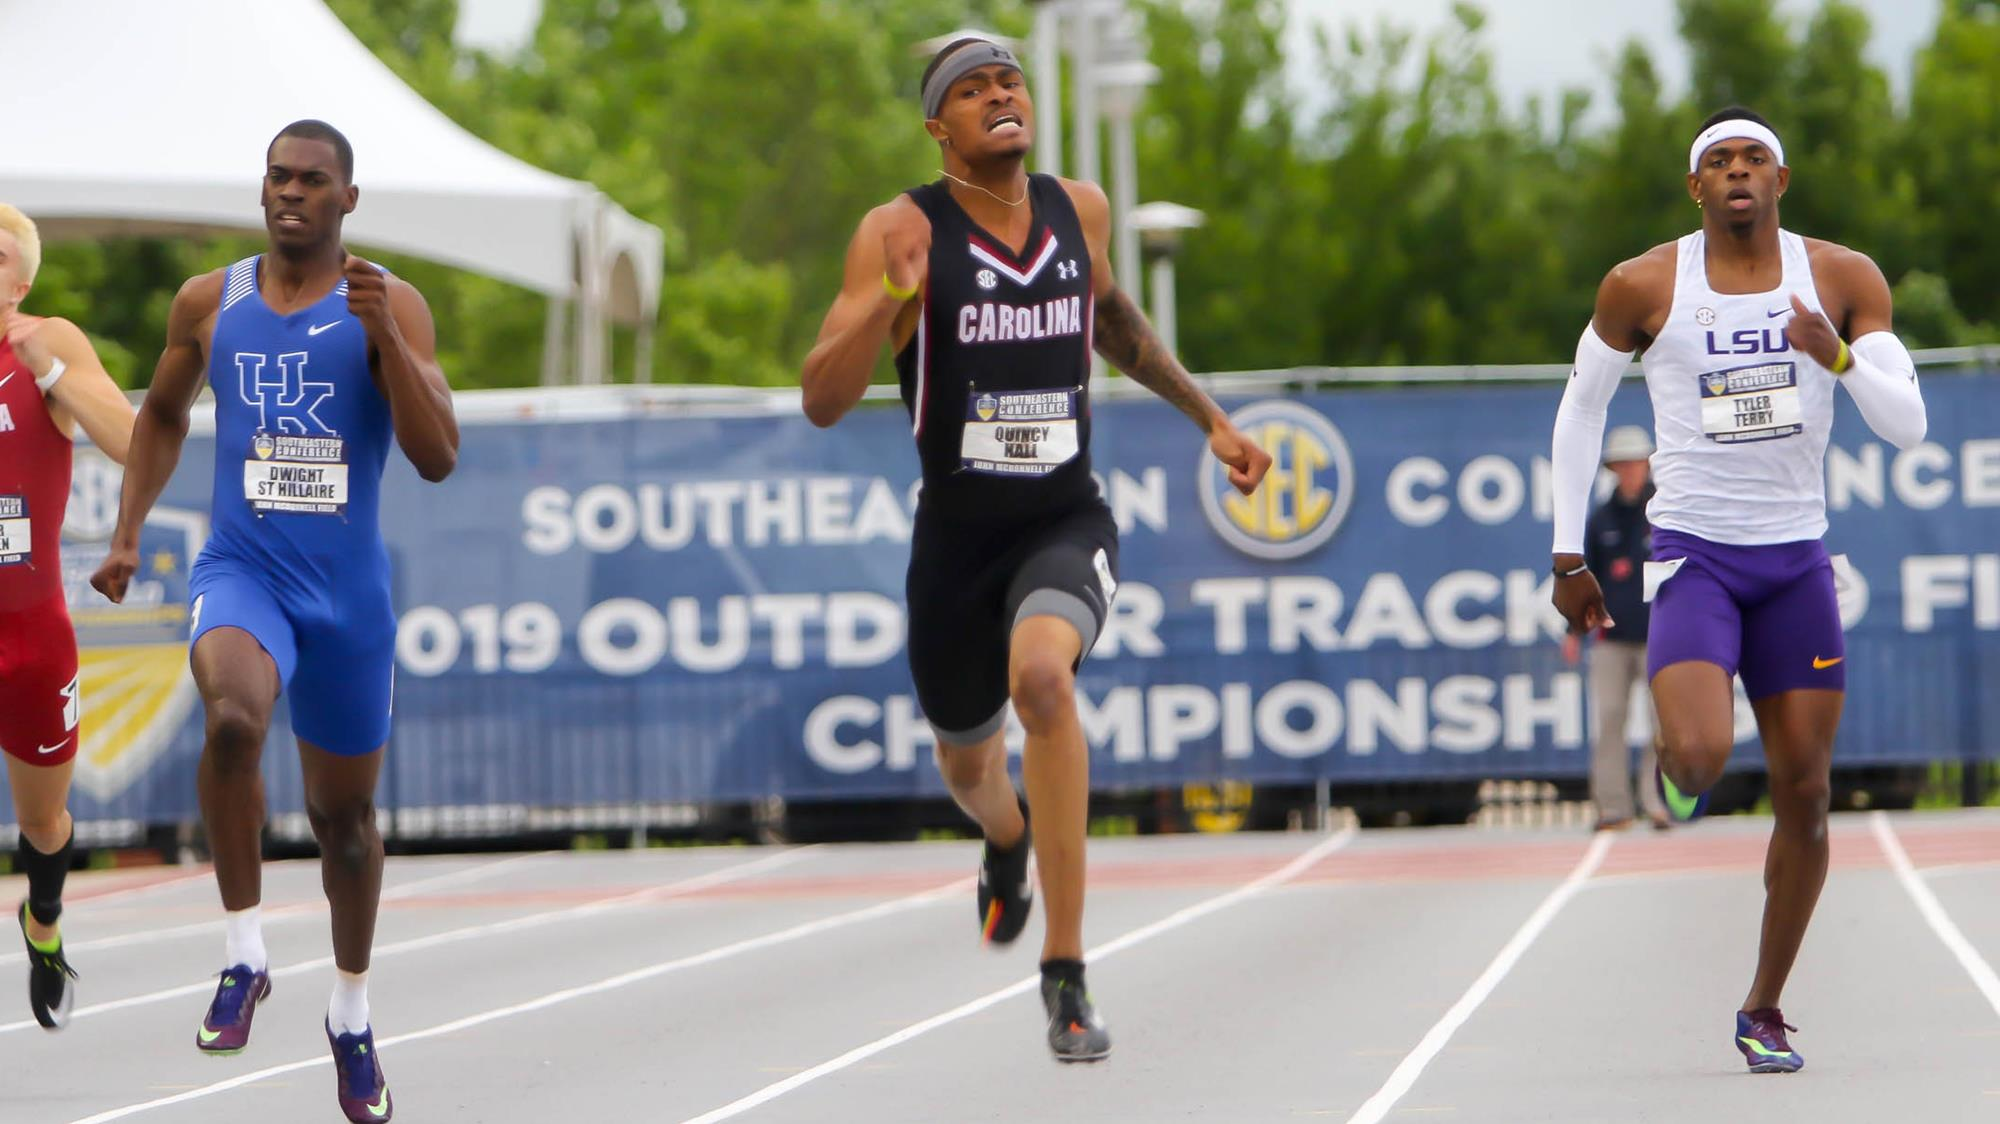 Quincy Hall - Track and Field - University of South Carolina Athletics